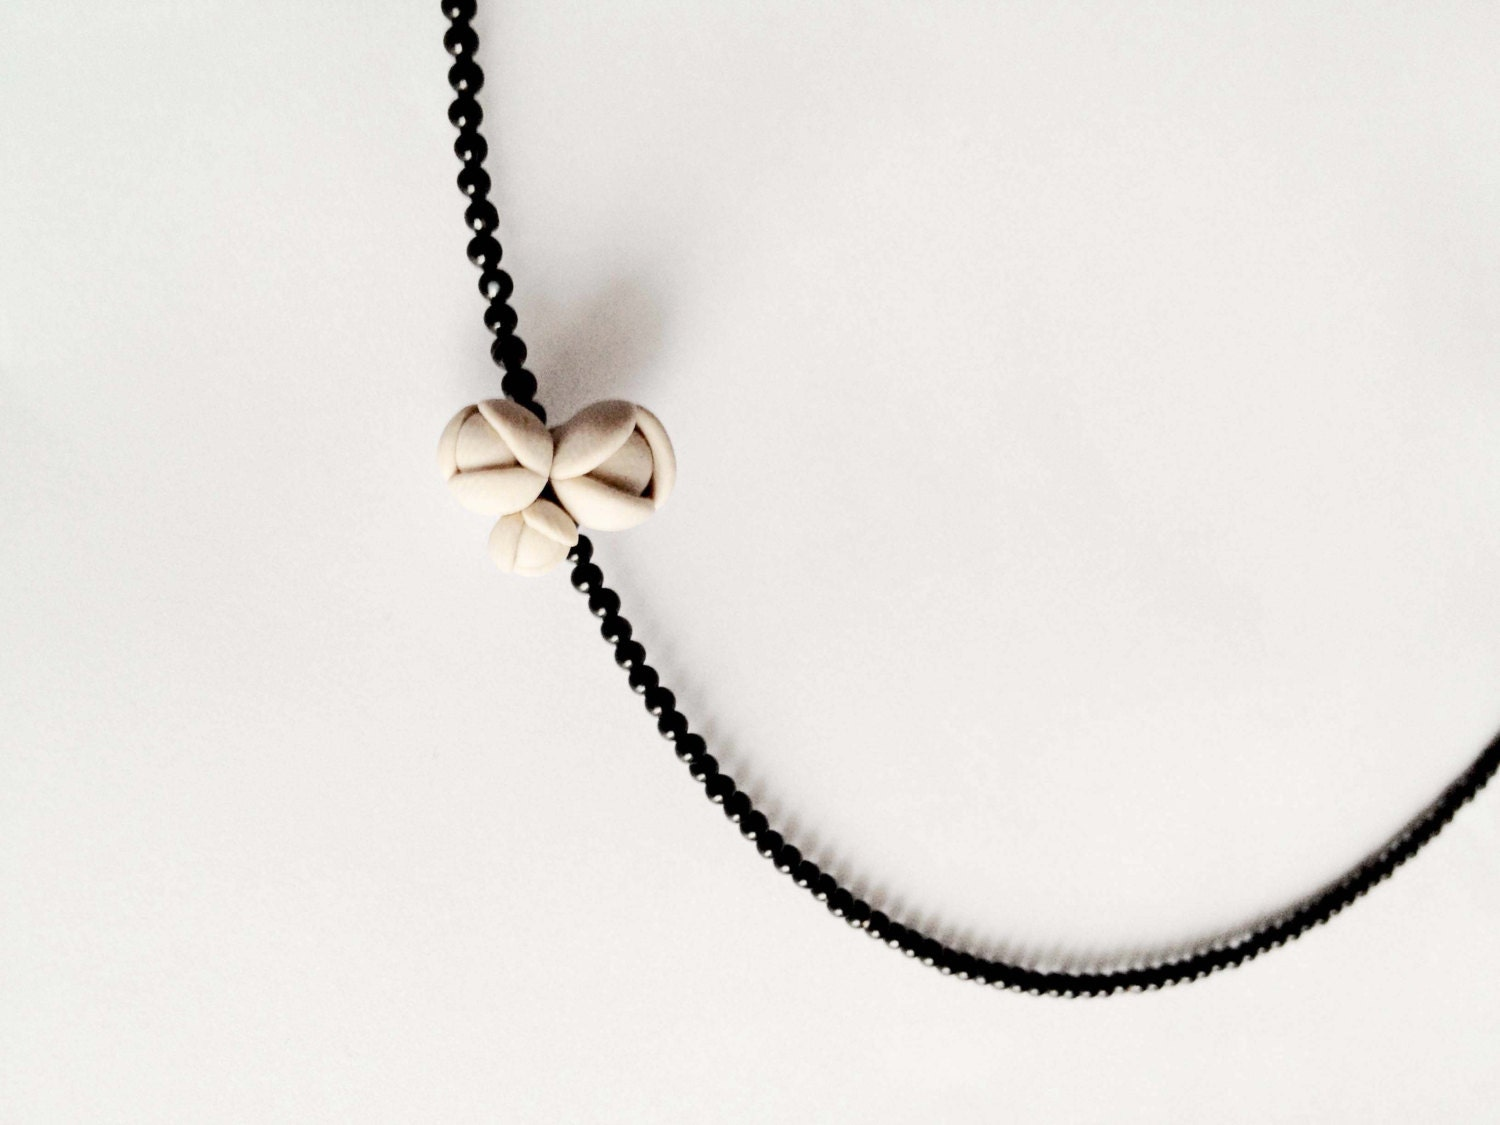 nO.167 'blooming tiny onyx', minimal organic necklace - eried